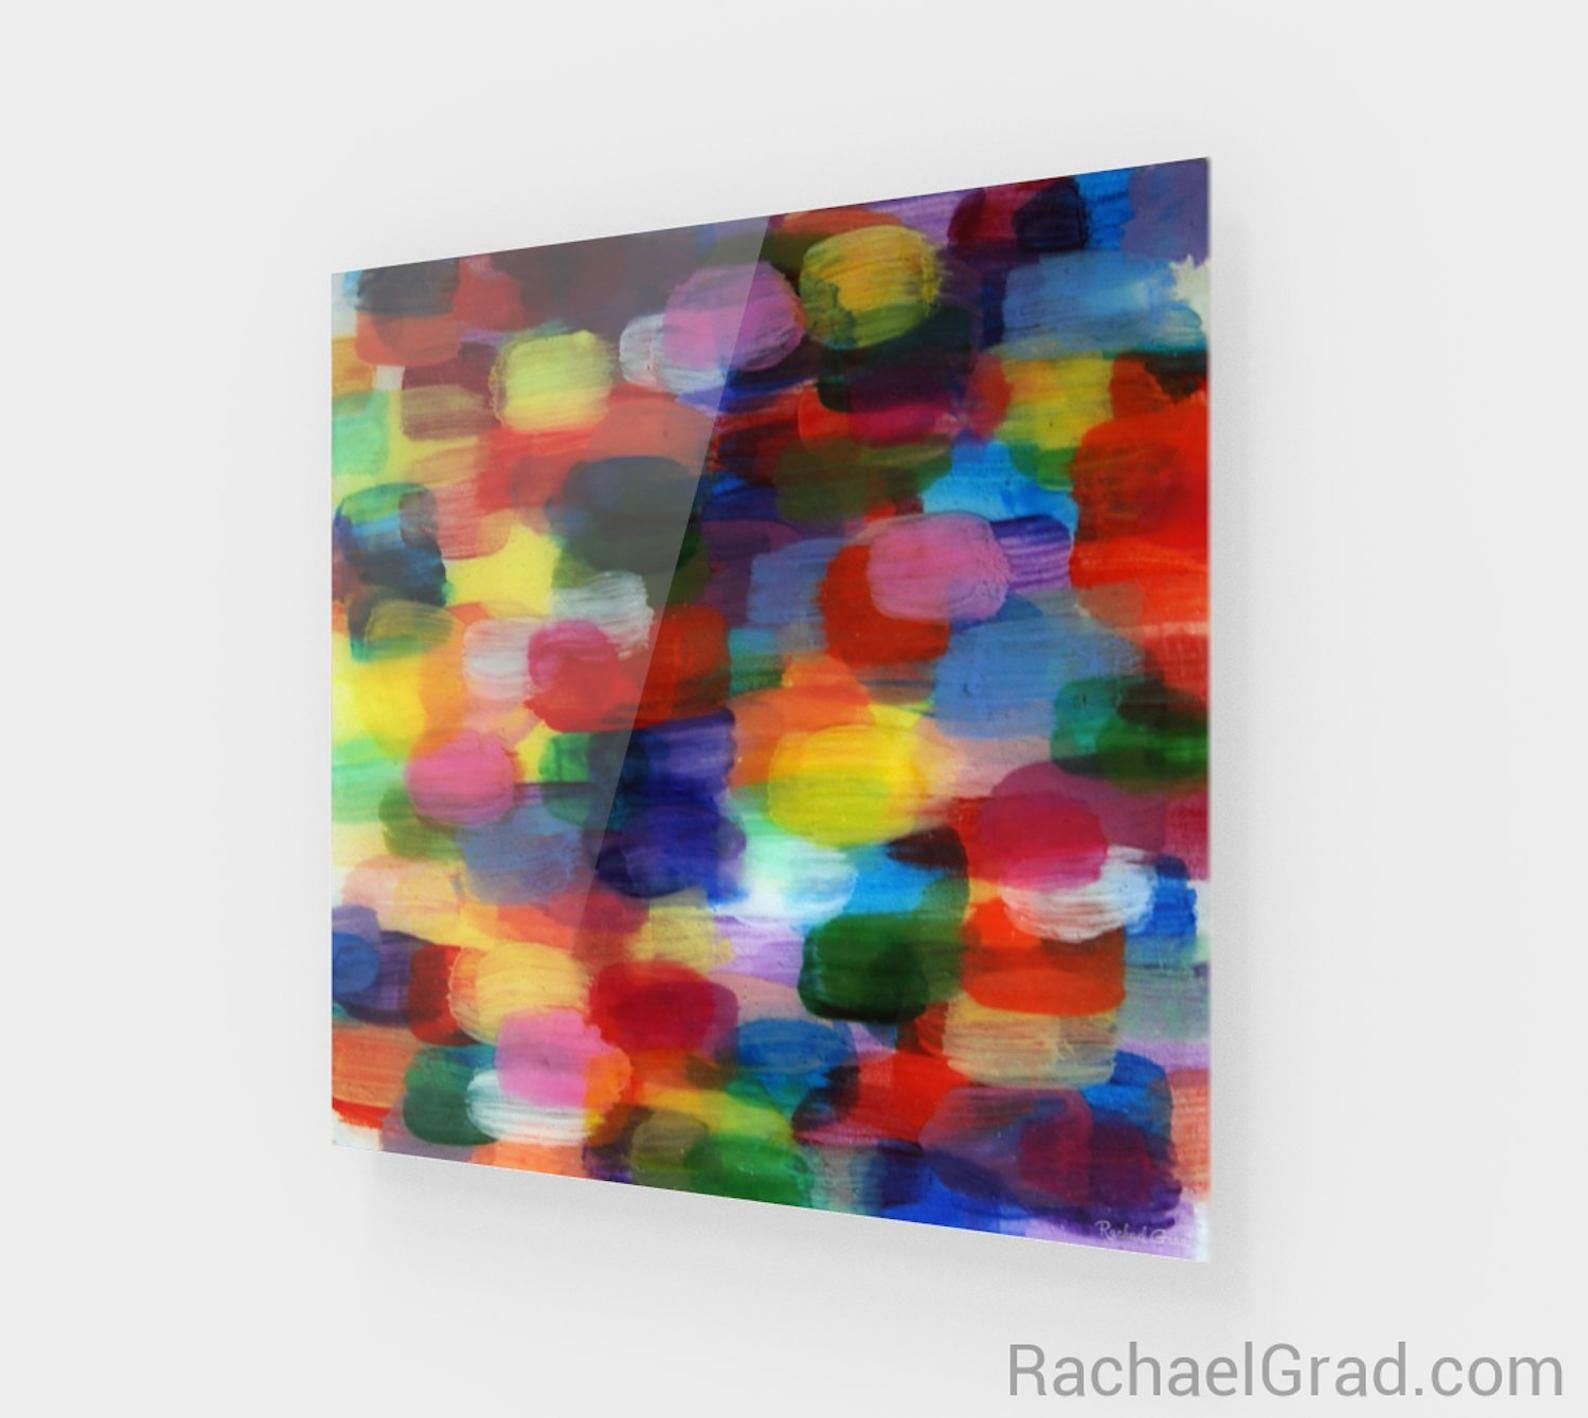 Colorful Abstract Square Wall Art Print In High Gloss Acrylic By Artist Rachael Grad Colorful Abstract Art Colorful Abstract Art Prints Red Art Print